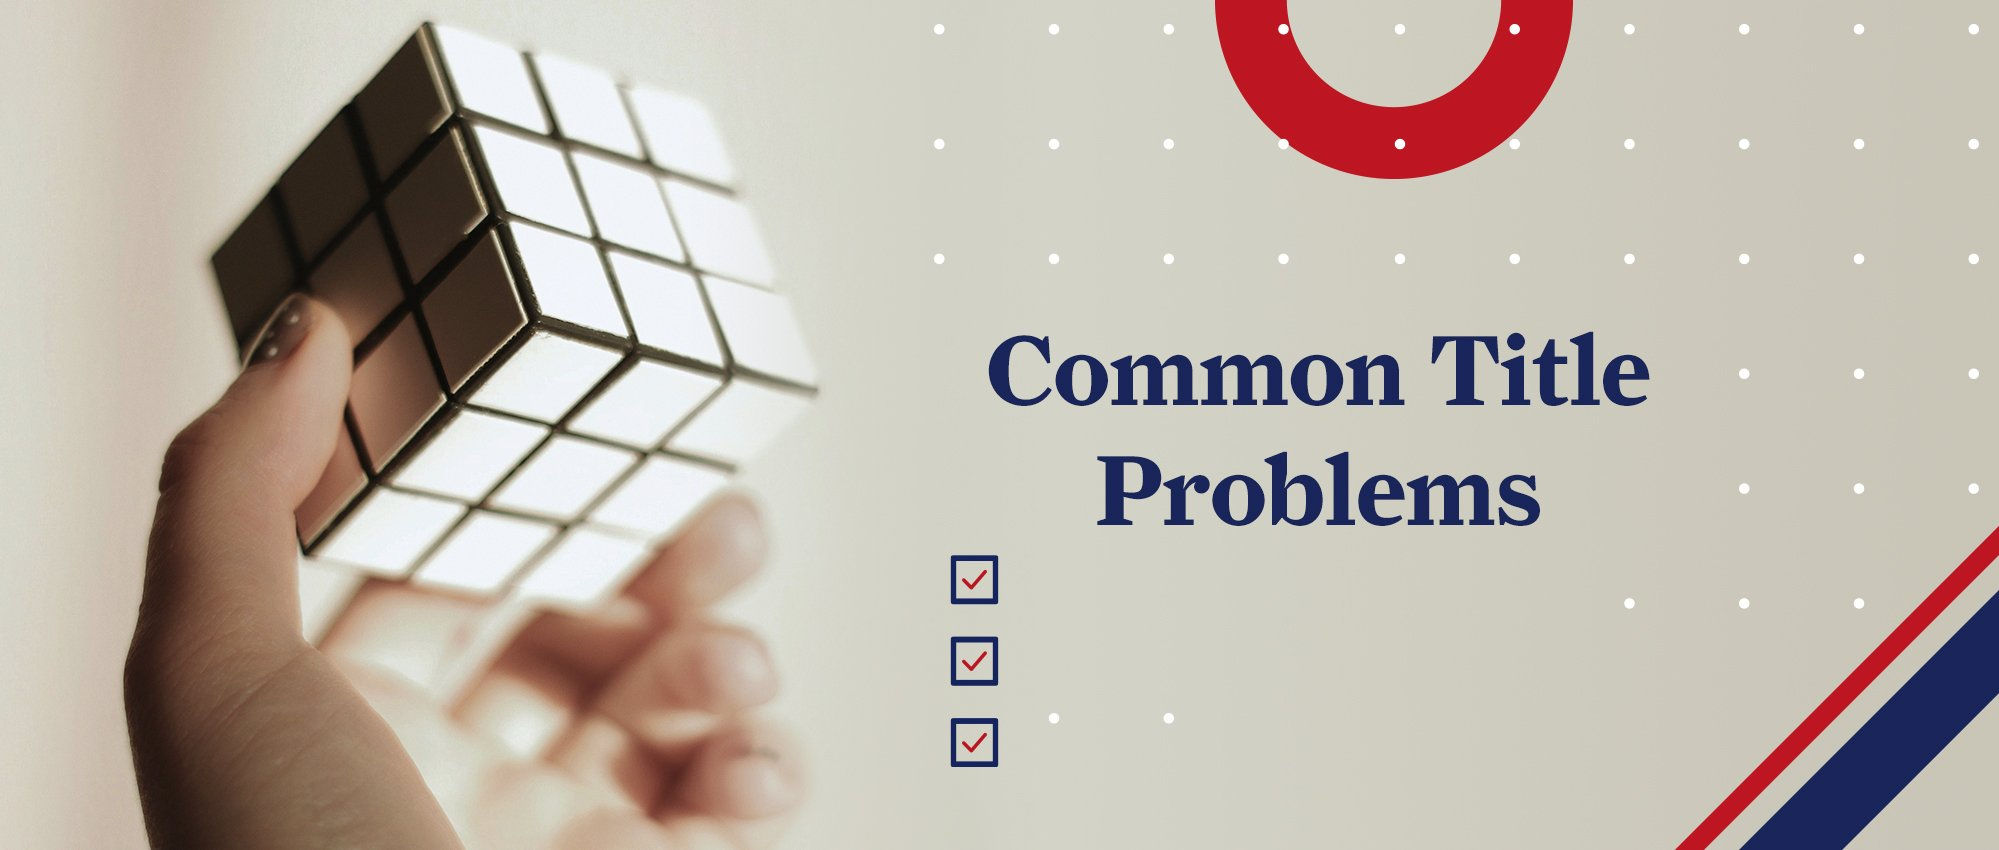 Common Title Problems - Text with a graphic of a Rubik's Cube